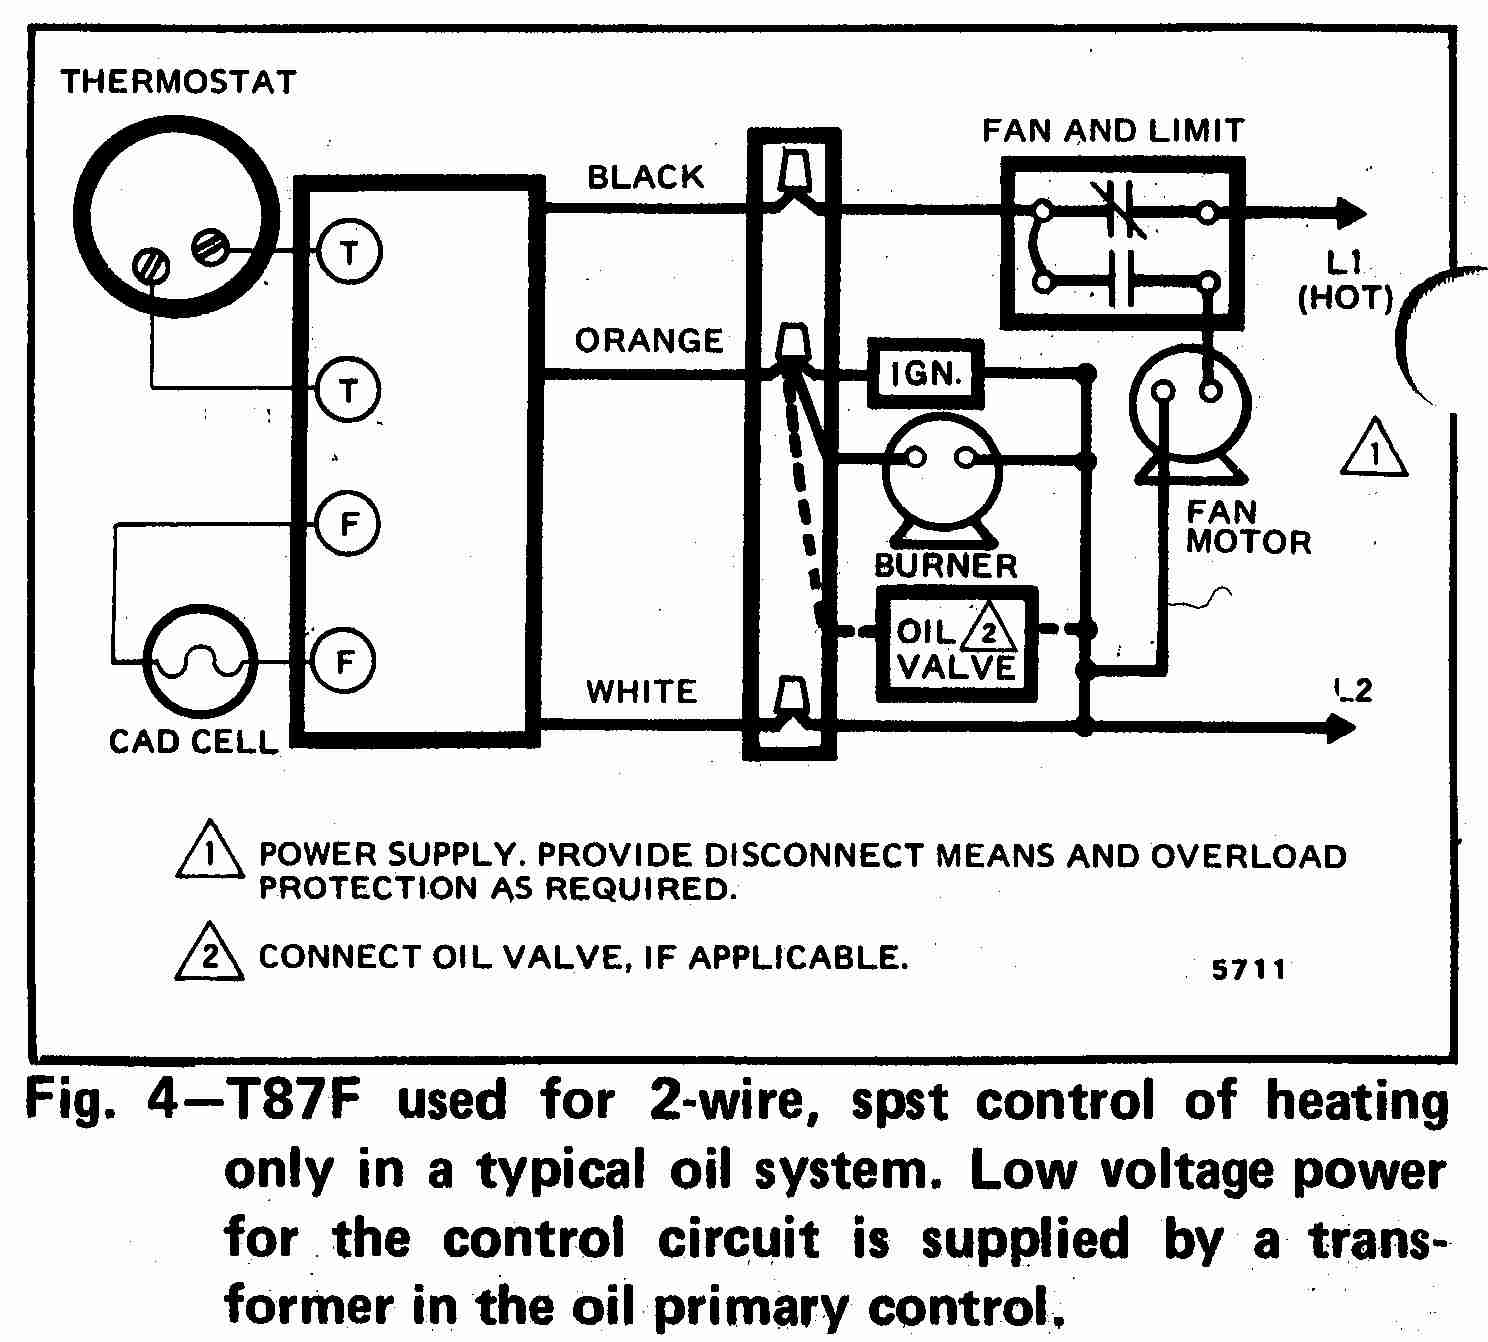 Heat wiring diagrams wiring diagrams room thermostat wiring diagrams for hvac systems heat pump wiring schematic honeywell t87f thermostat wiring diagram asfbconference2016 Image collections